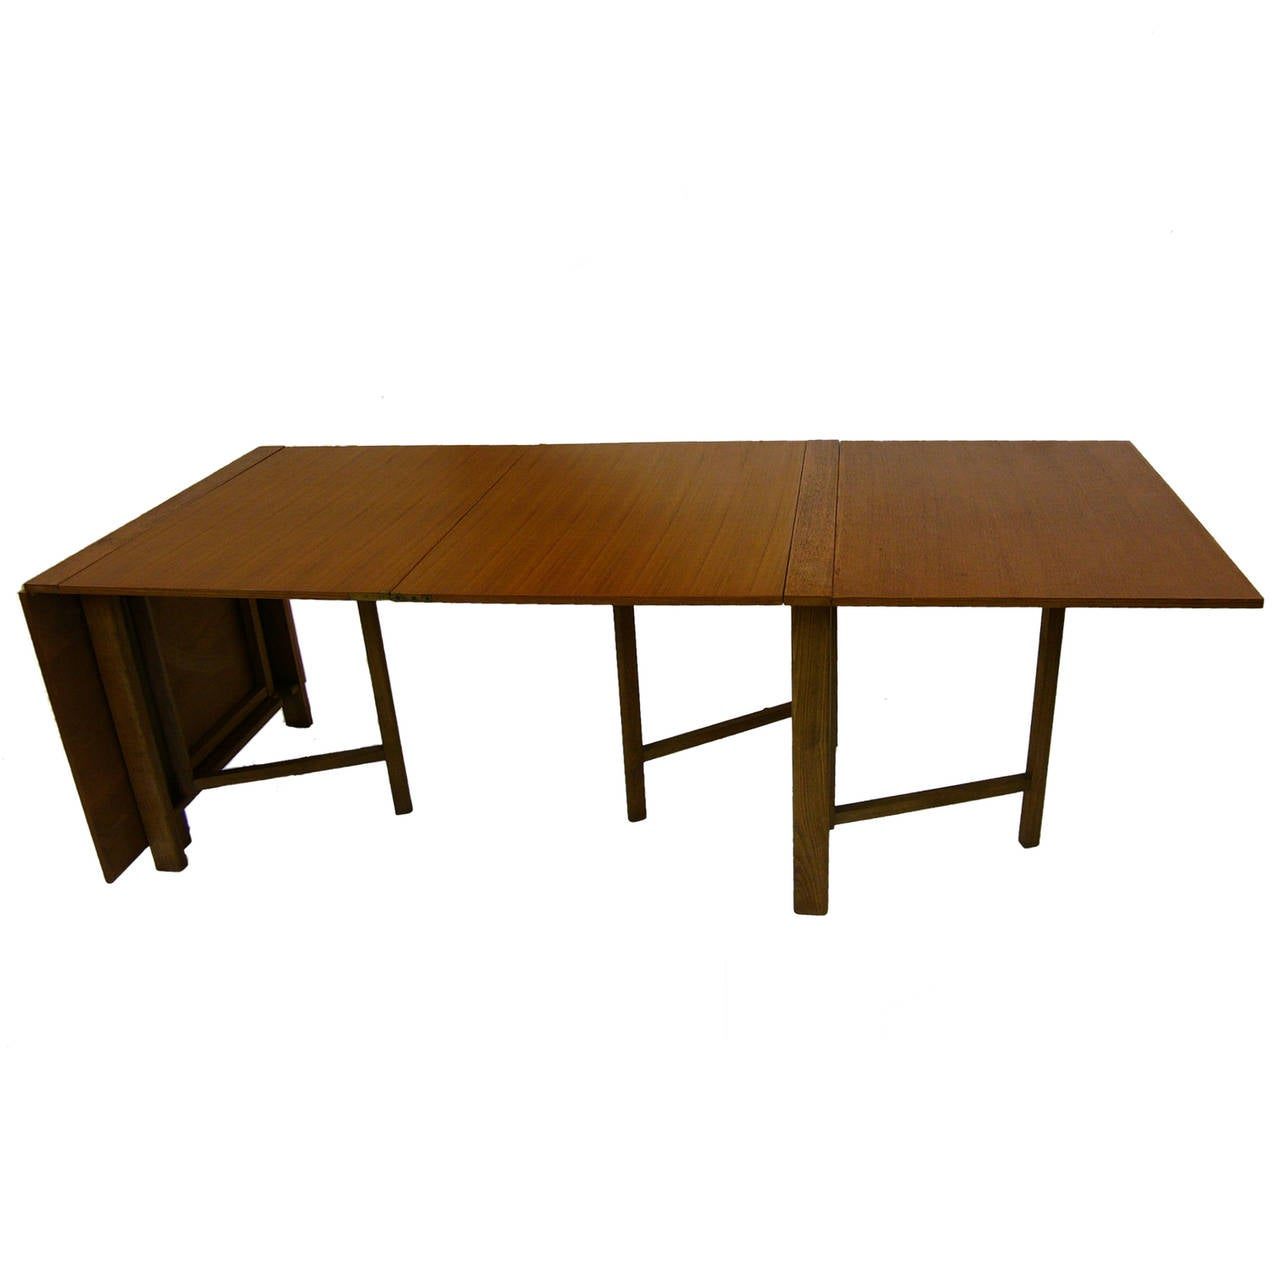 Bruno Mathsson Style Maria Drop Leaf Dining Table image 2 : mathsson6l from 1stdibs.com size 1280 x 1280 jpeg 78kB